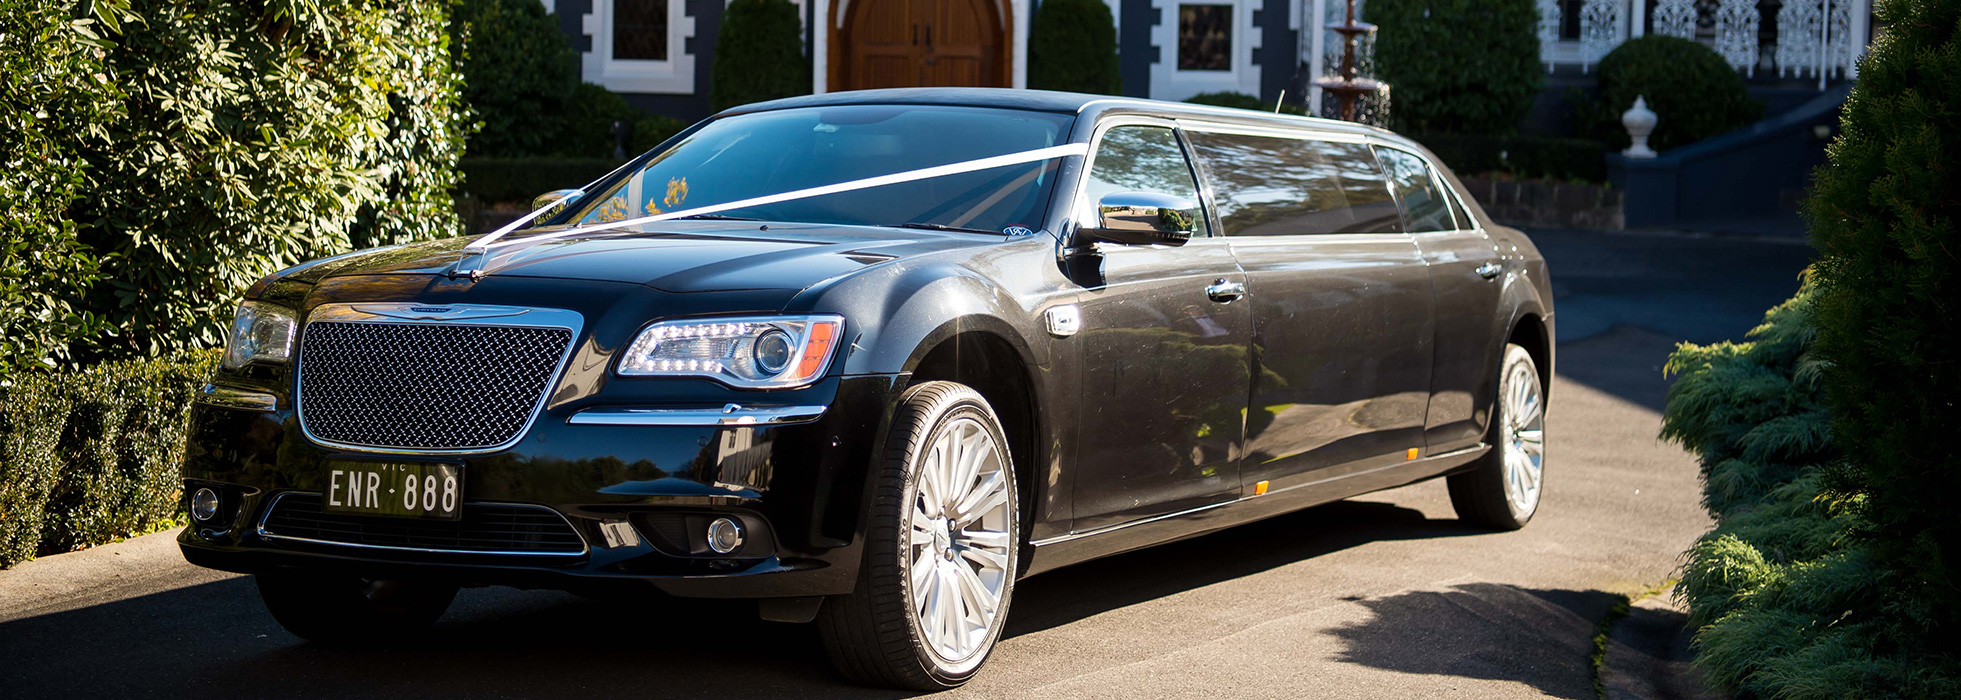 Special Occasions Limo Hire Melbourne V2